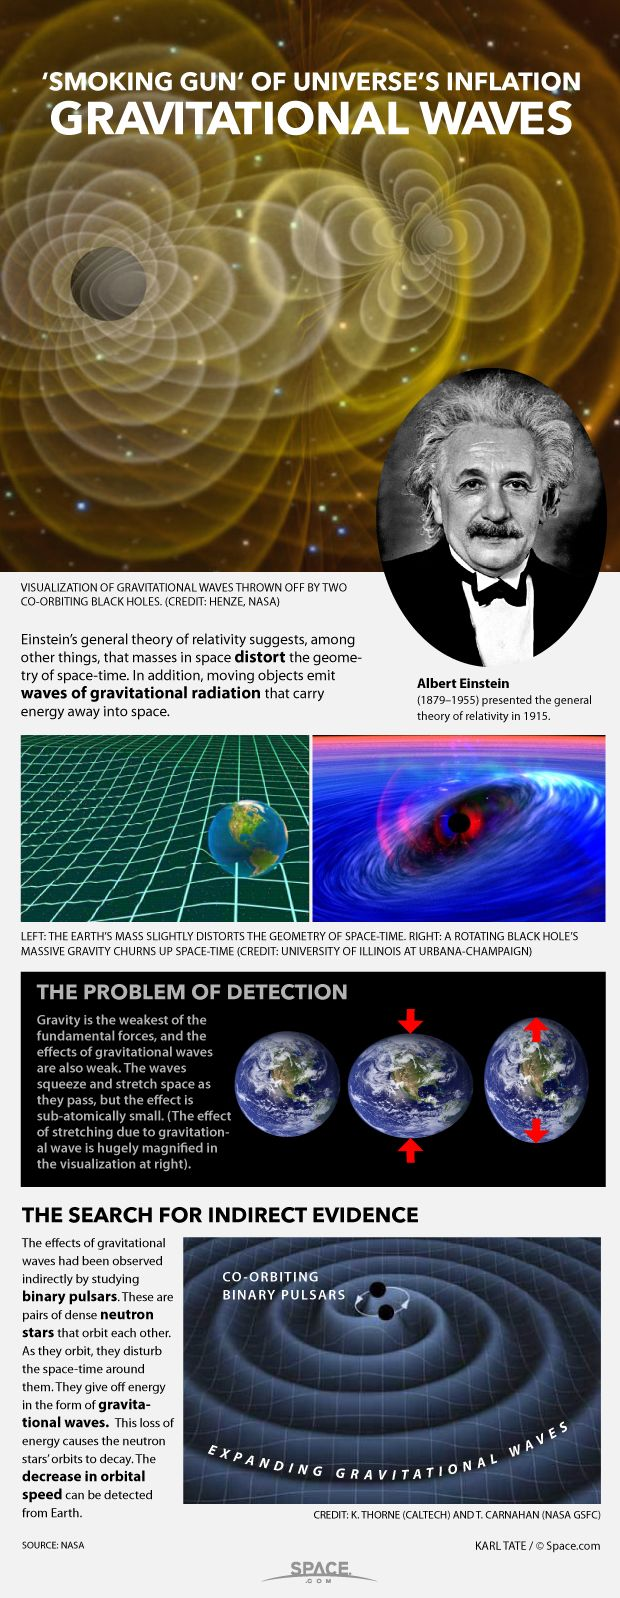 Freaky Physics: Why the Discovery of Gravitational Waves Should Blow